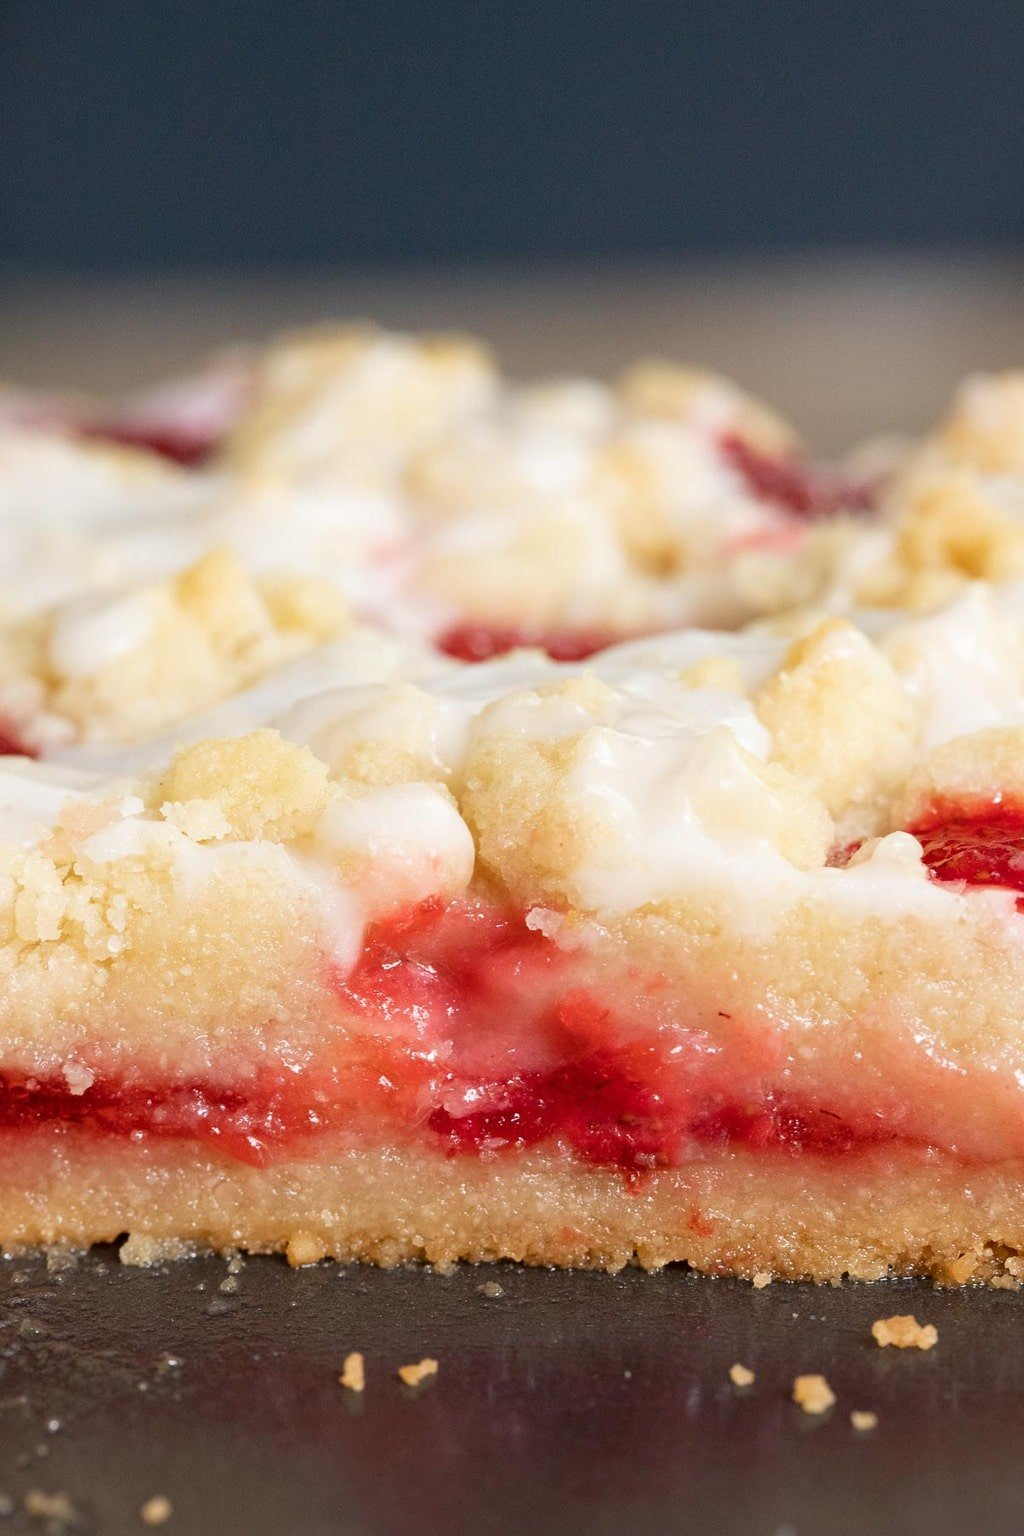 Ultra closeup vertical photo of the inside filling of a Strawberry Jam Shortbread Tart.